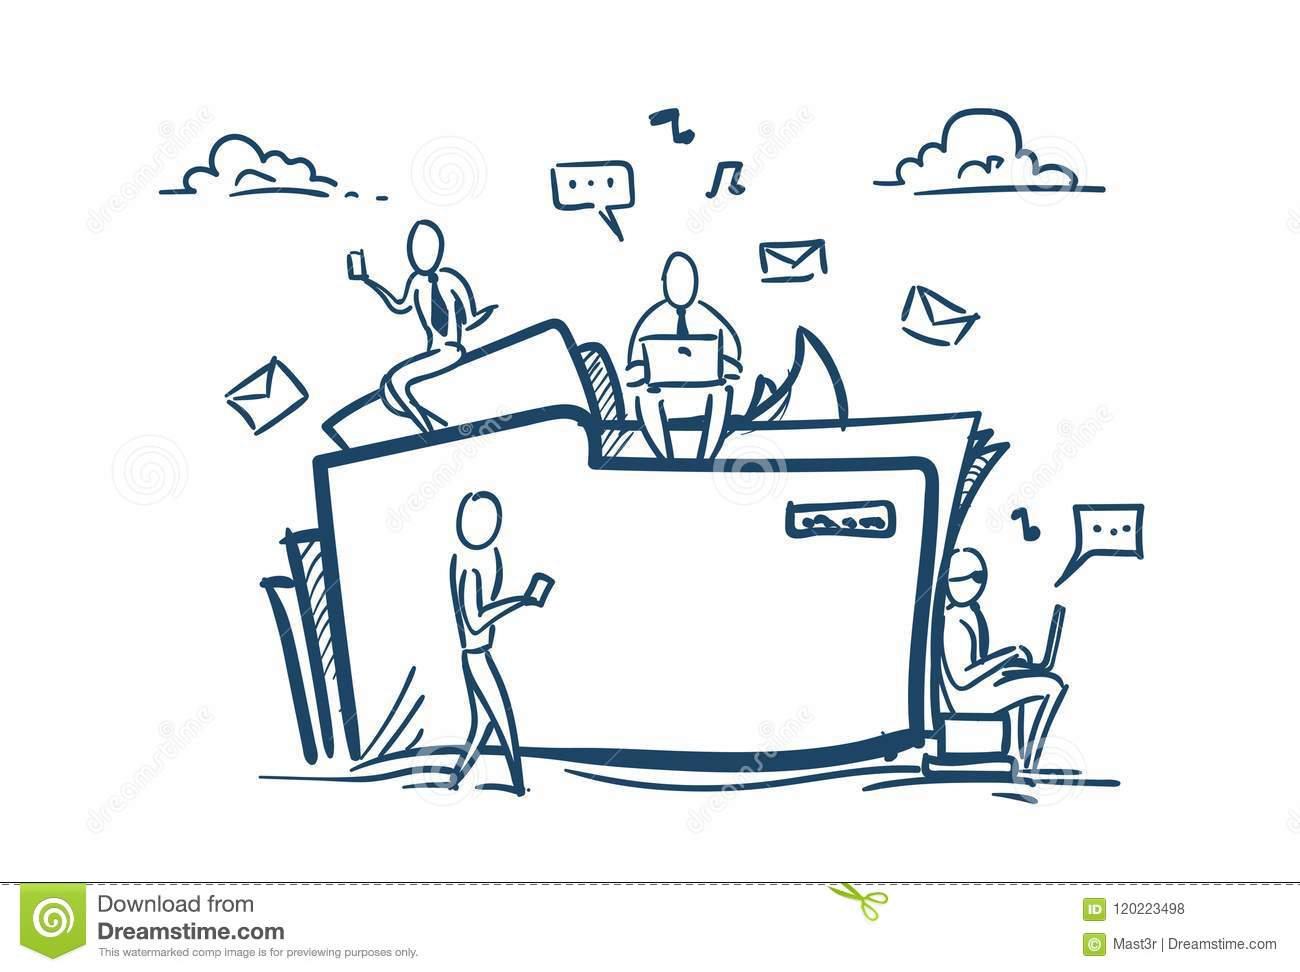 Cloud data storage folder file sharing service concept businesspeople working together over white background sketch